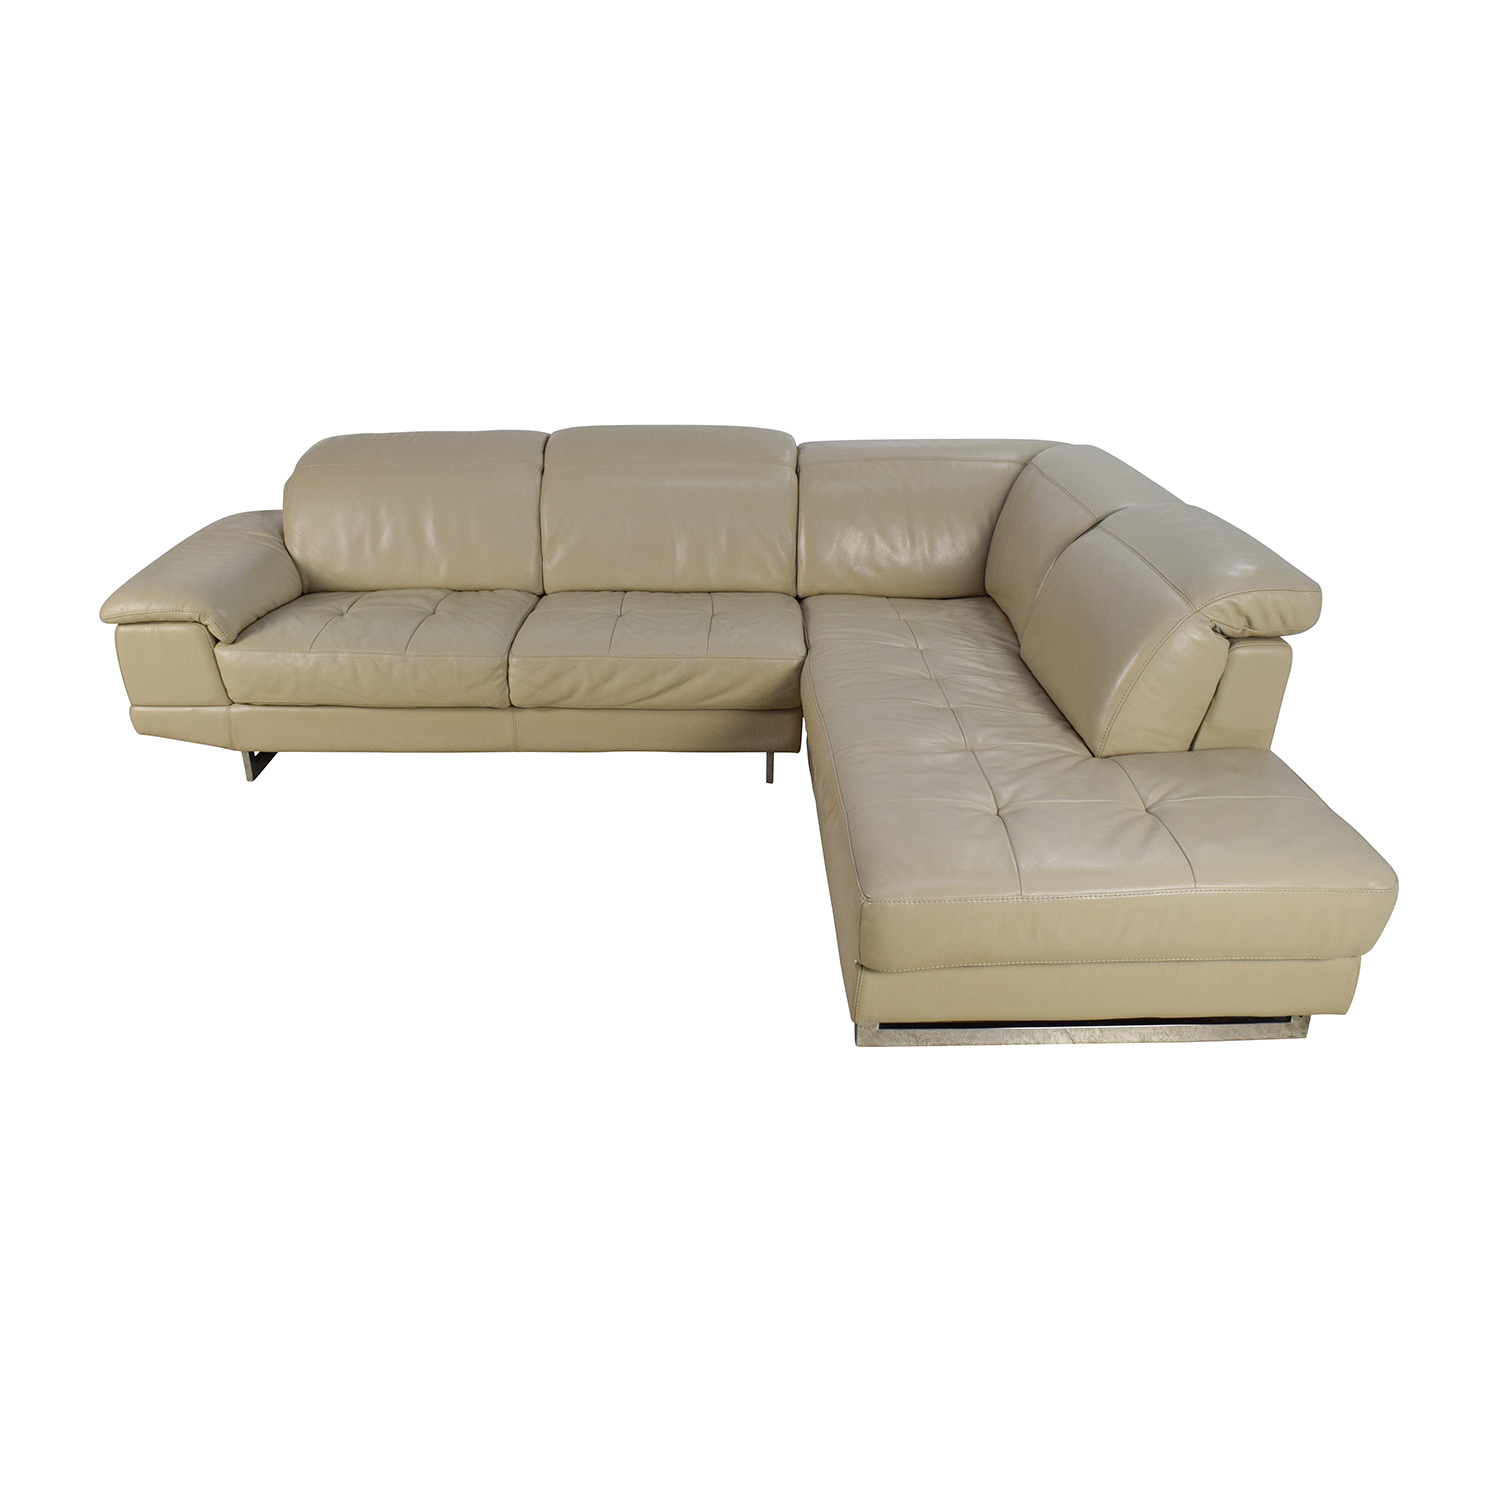 Beige Italian Leather Couch with Adjustable Headrests dimensions